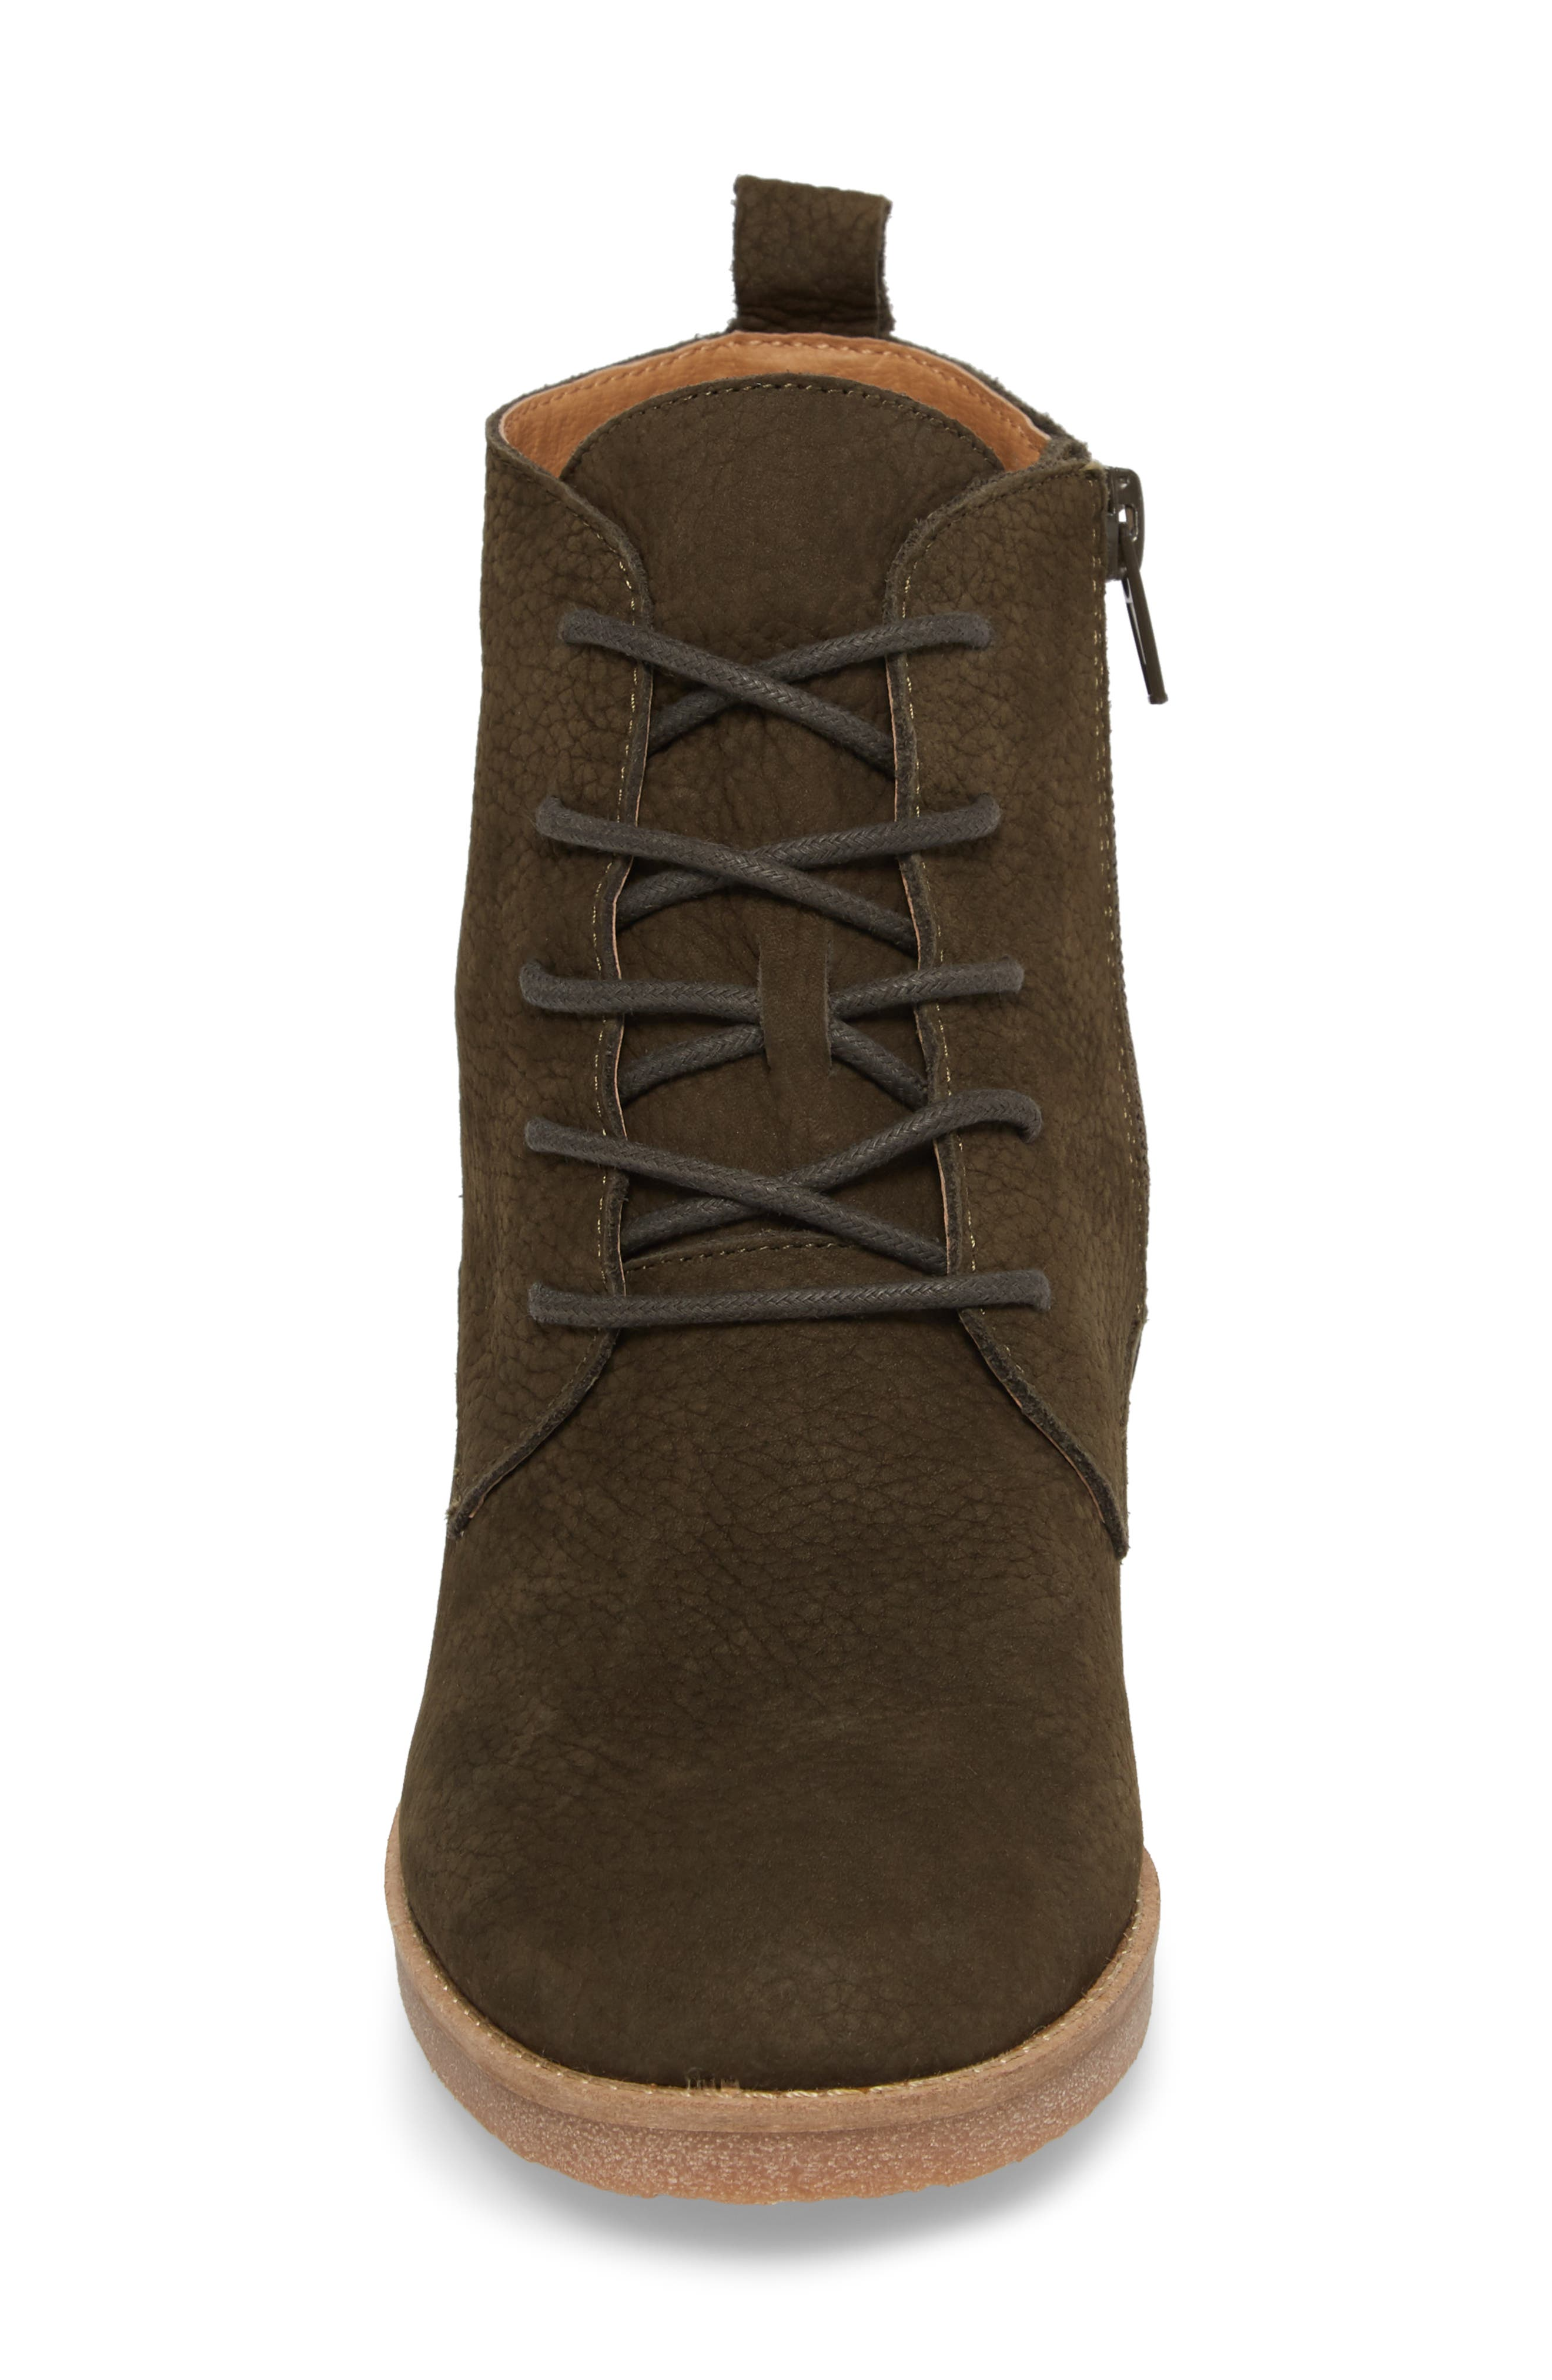 Tamela Lace-Up Bootie,                             Alternate thumbnail 4, color,                             Dark Moss Nubuck